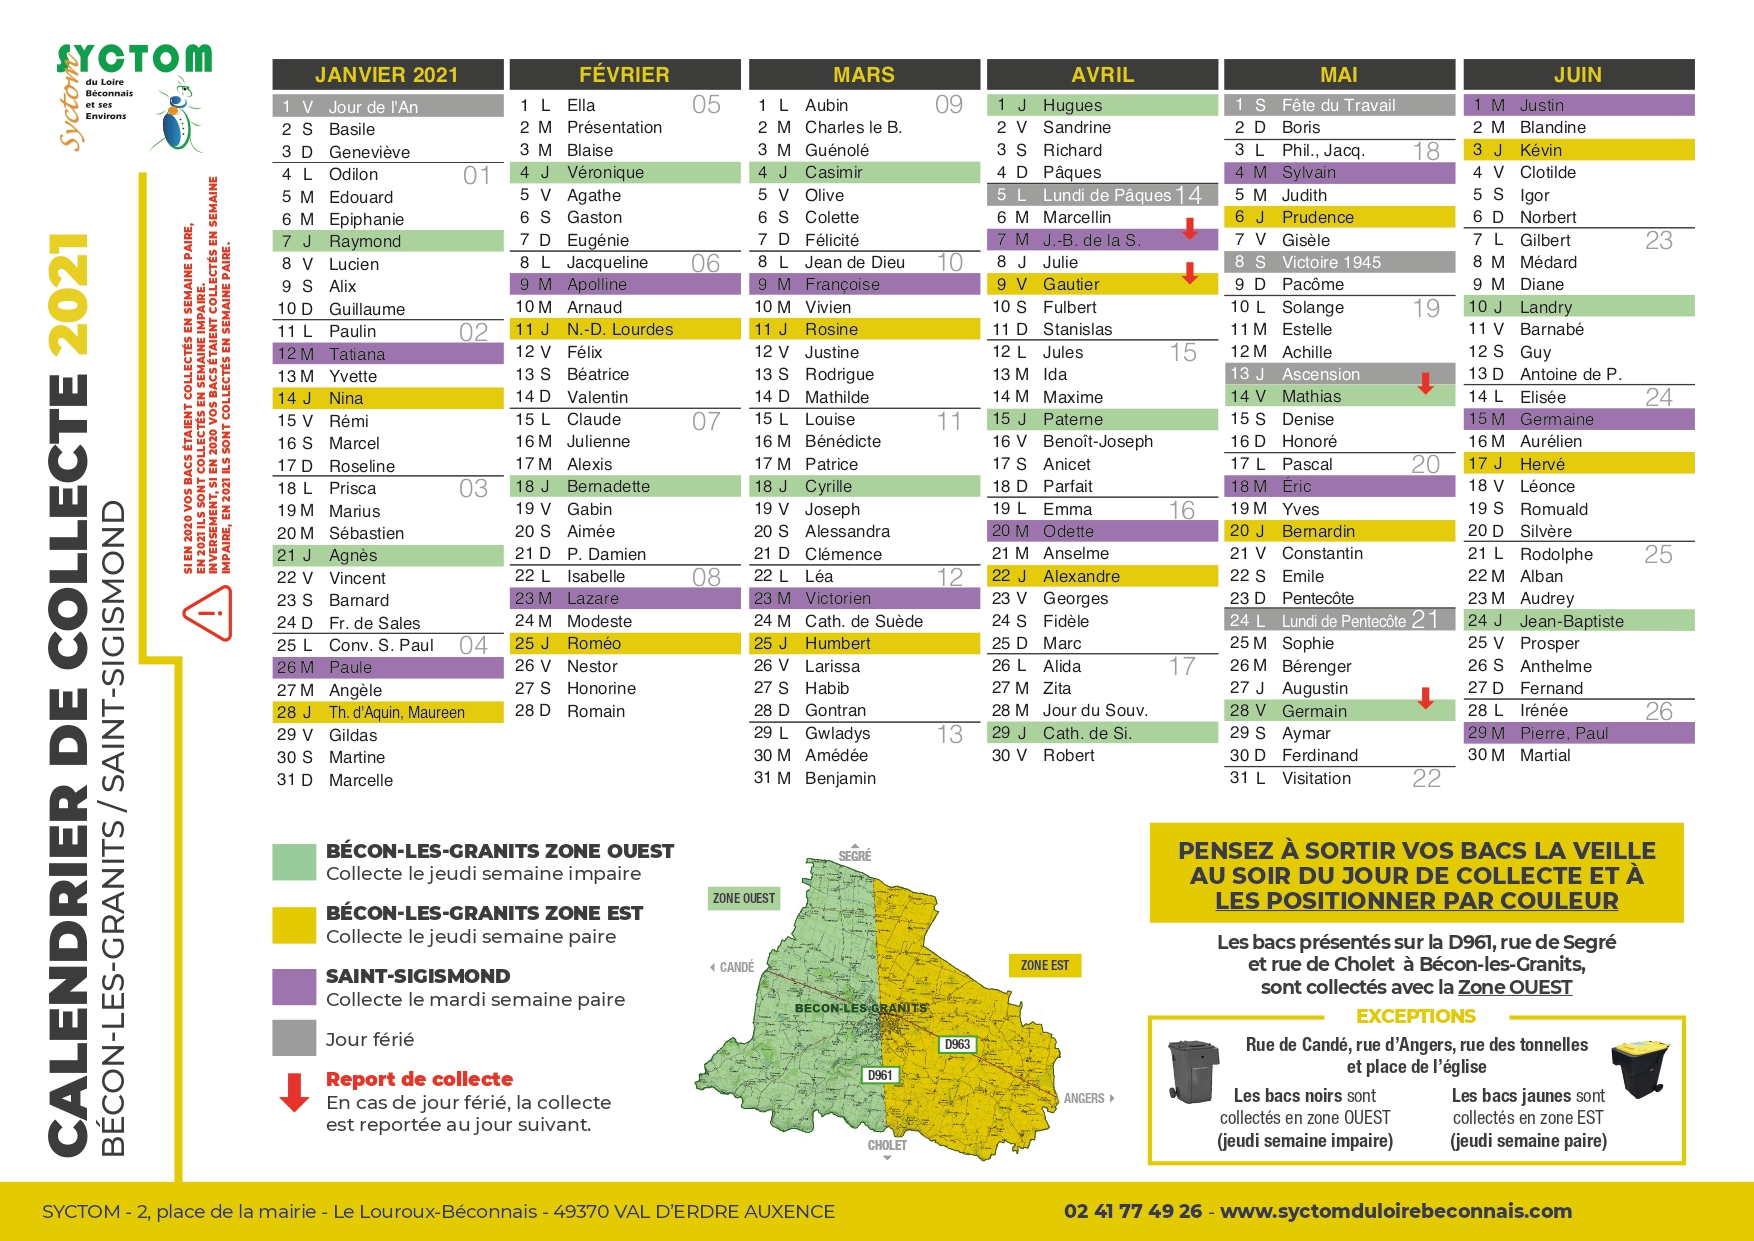 Calendrier BECON-LES-GRANITS_ST SIGISMOND_2021_page-0001.jpg